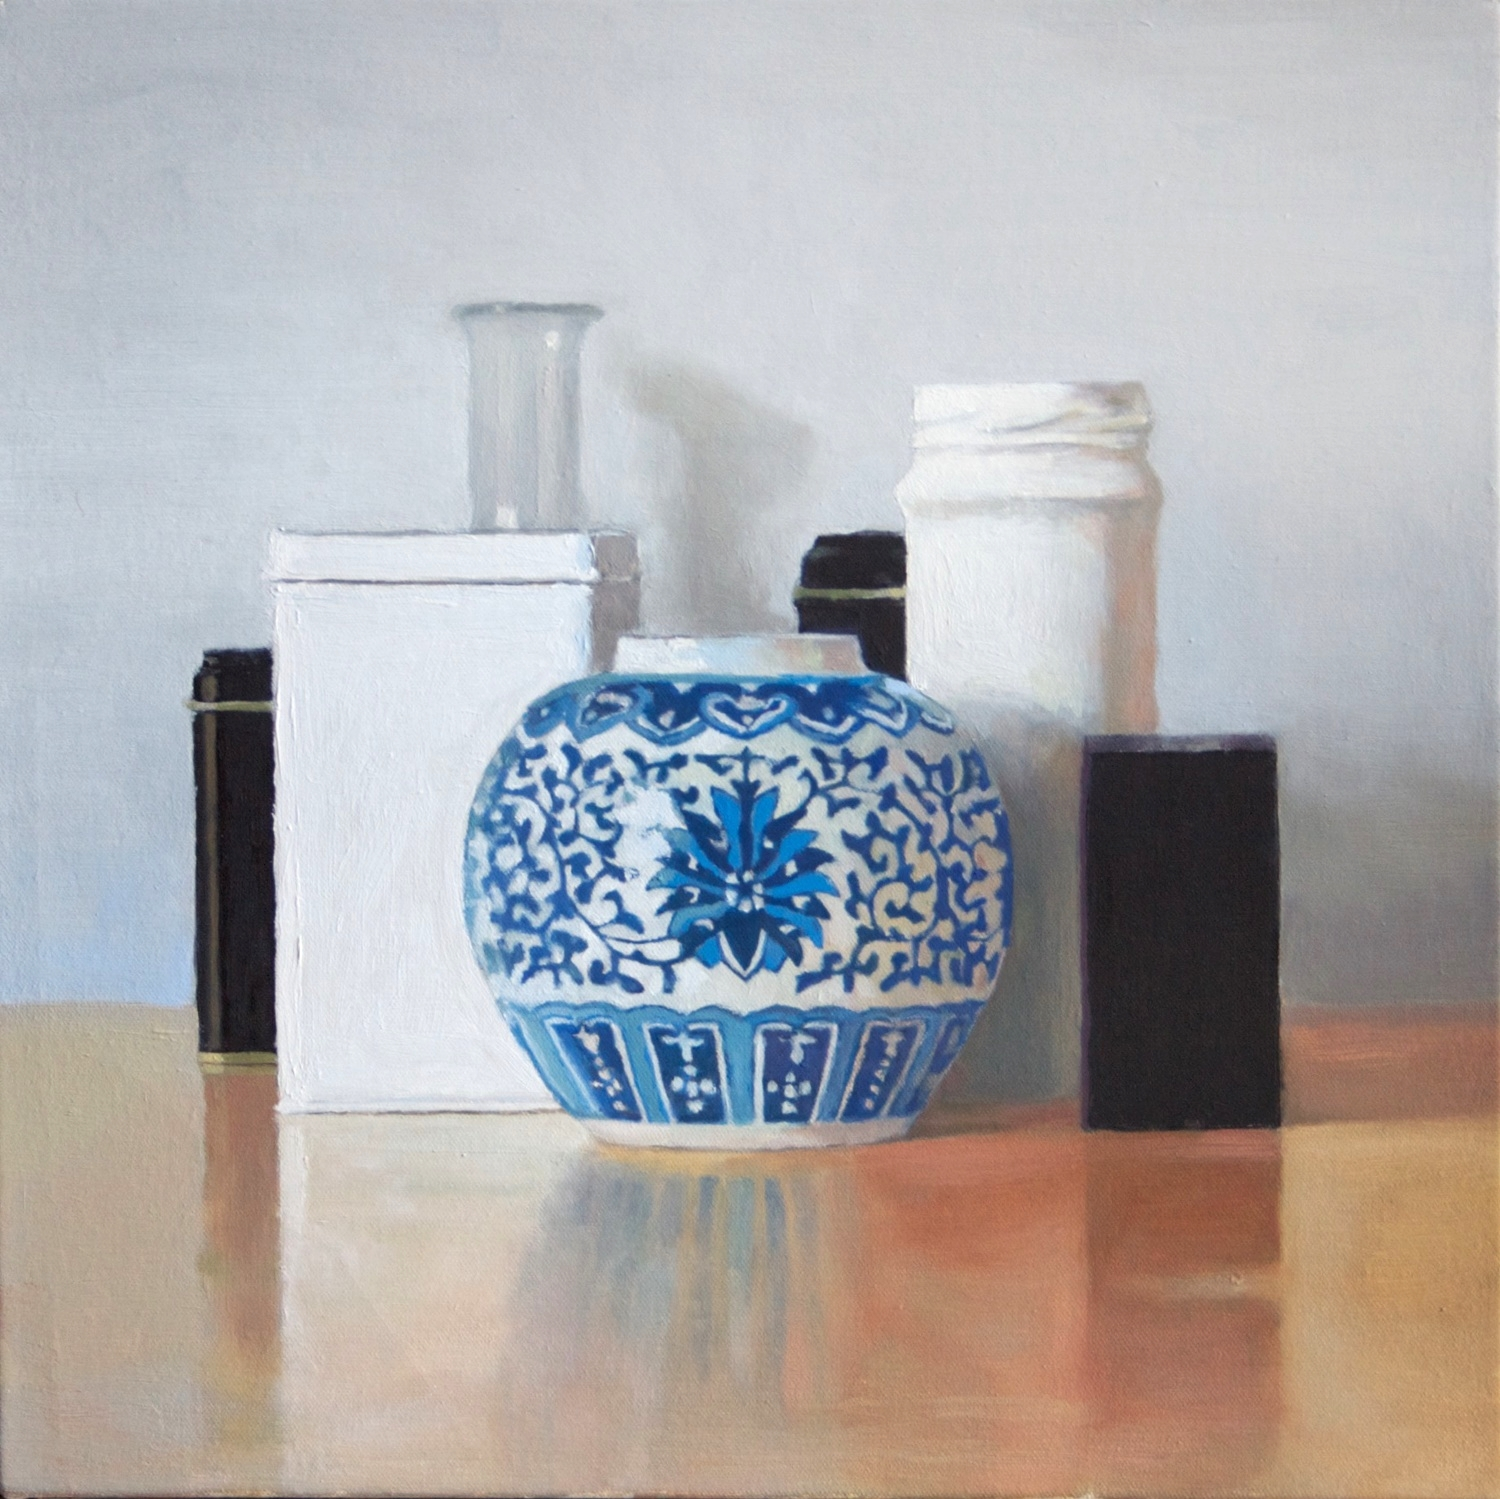 Still Life with Ornamental Vase, 2014 Oil on canvas, 16 x 16 inches $950 + HST Contemporary steel reveal frame, silver-gold, 2 inch height , 1/4 inch width.